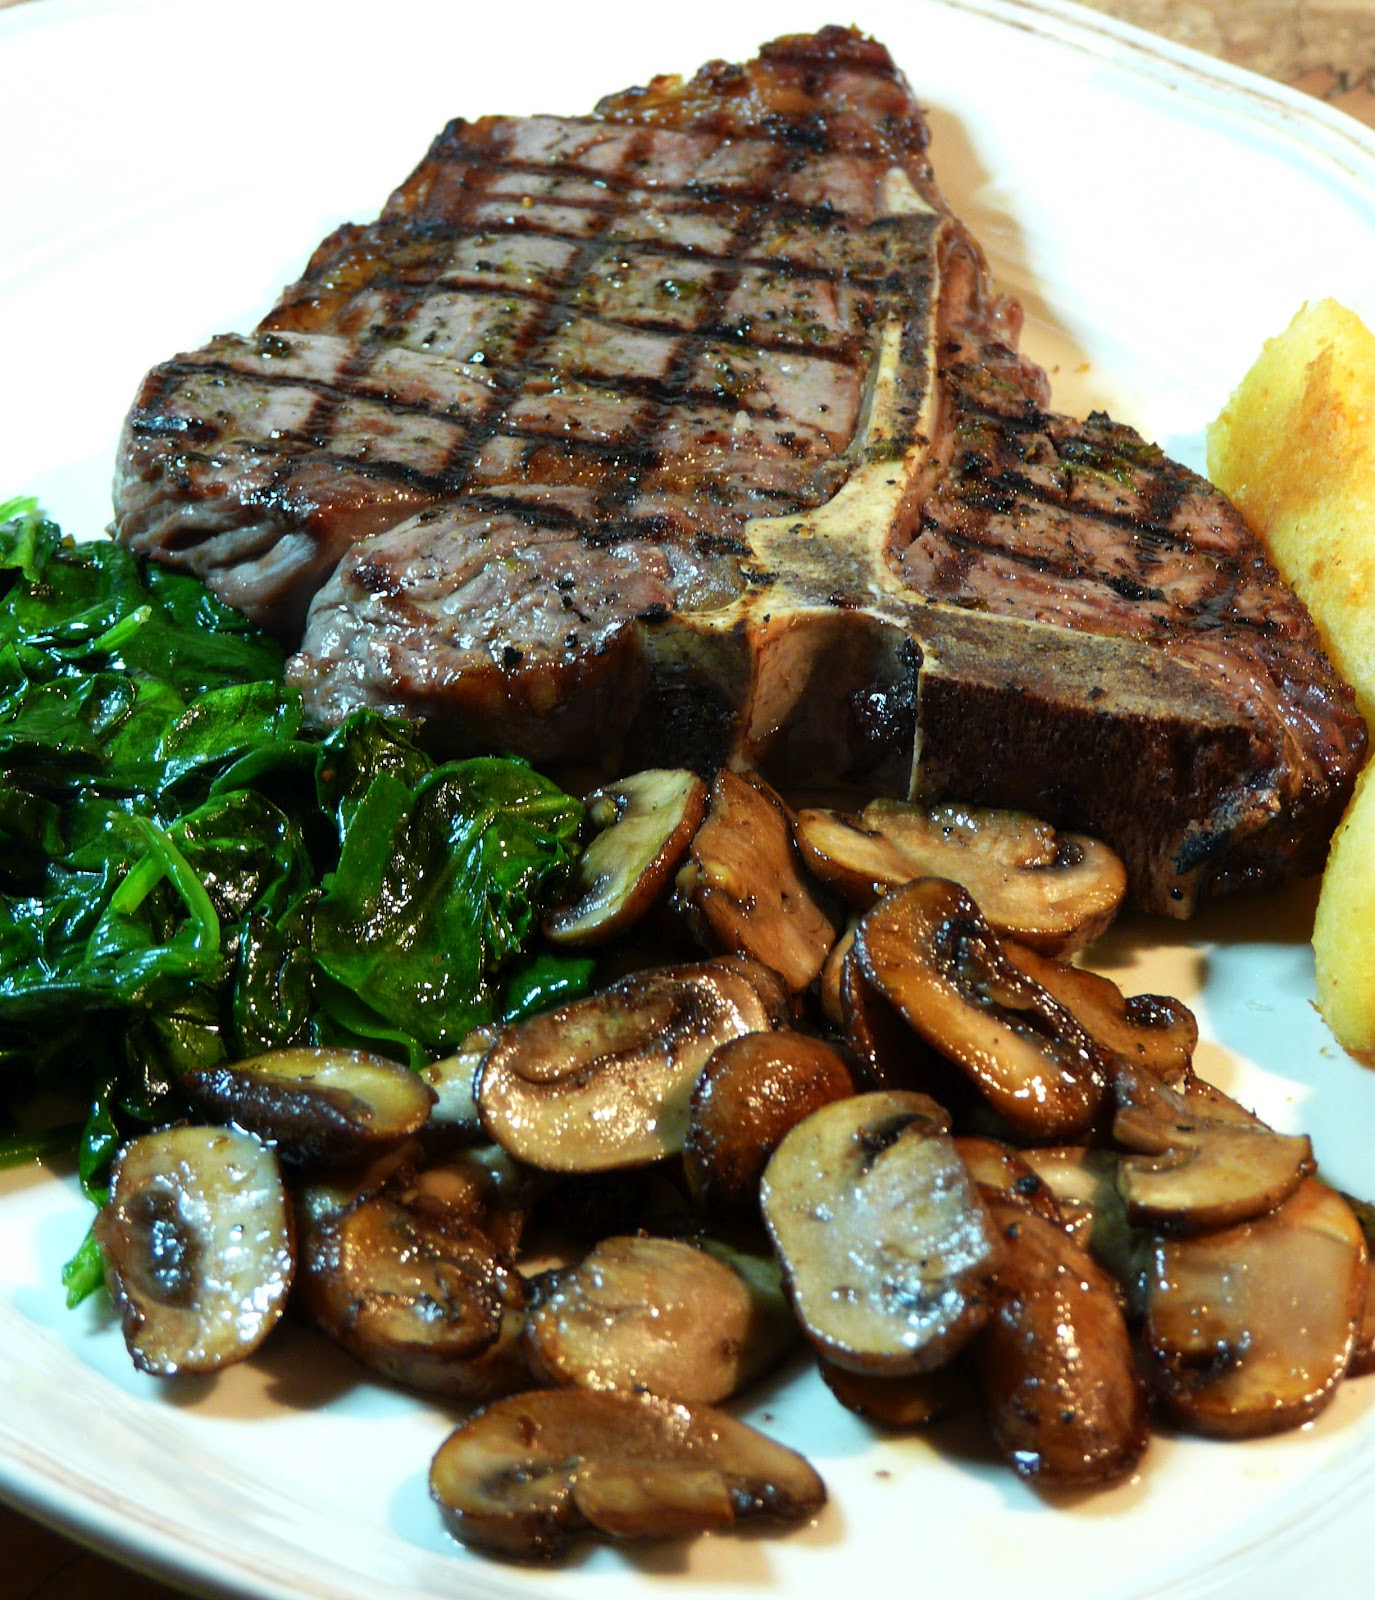 T-Bone_Steak_with_Mushrooms_and_Spinach_Feb_24th__2012.jpg